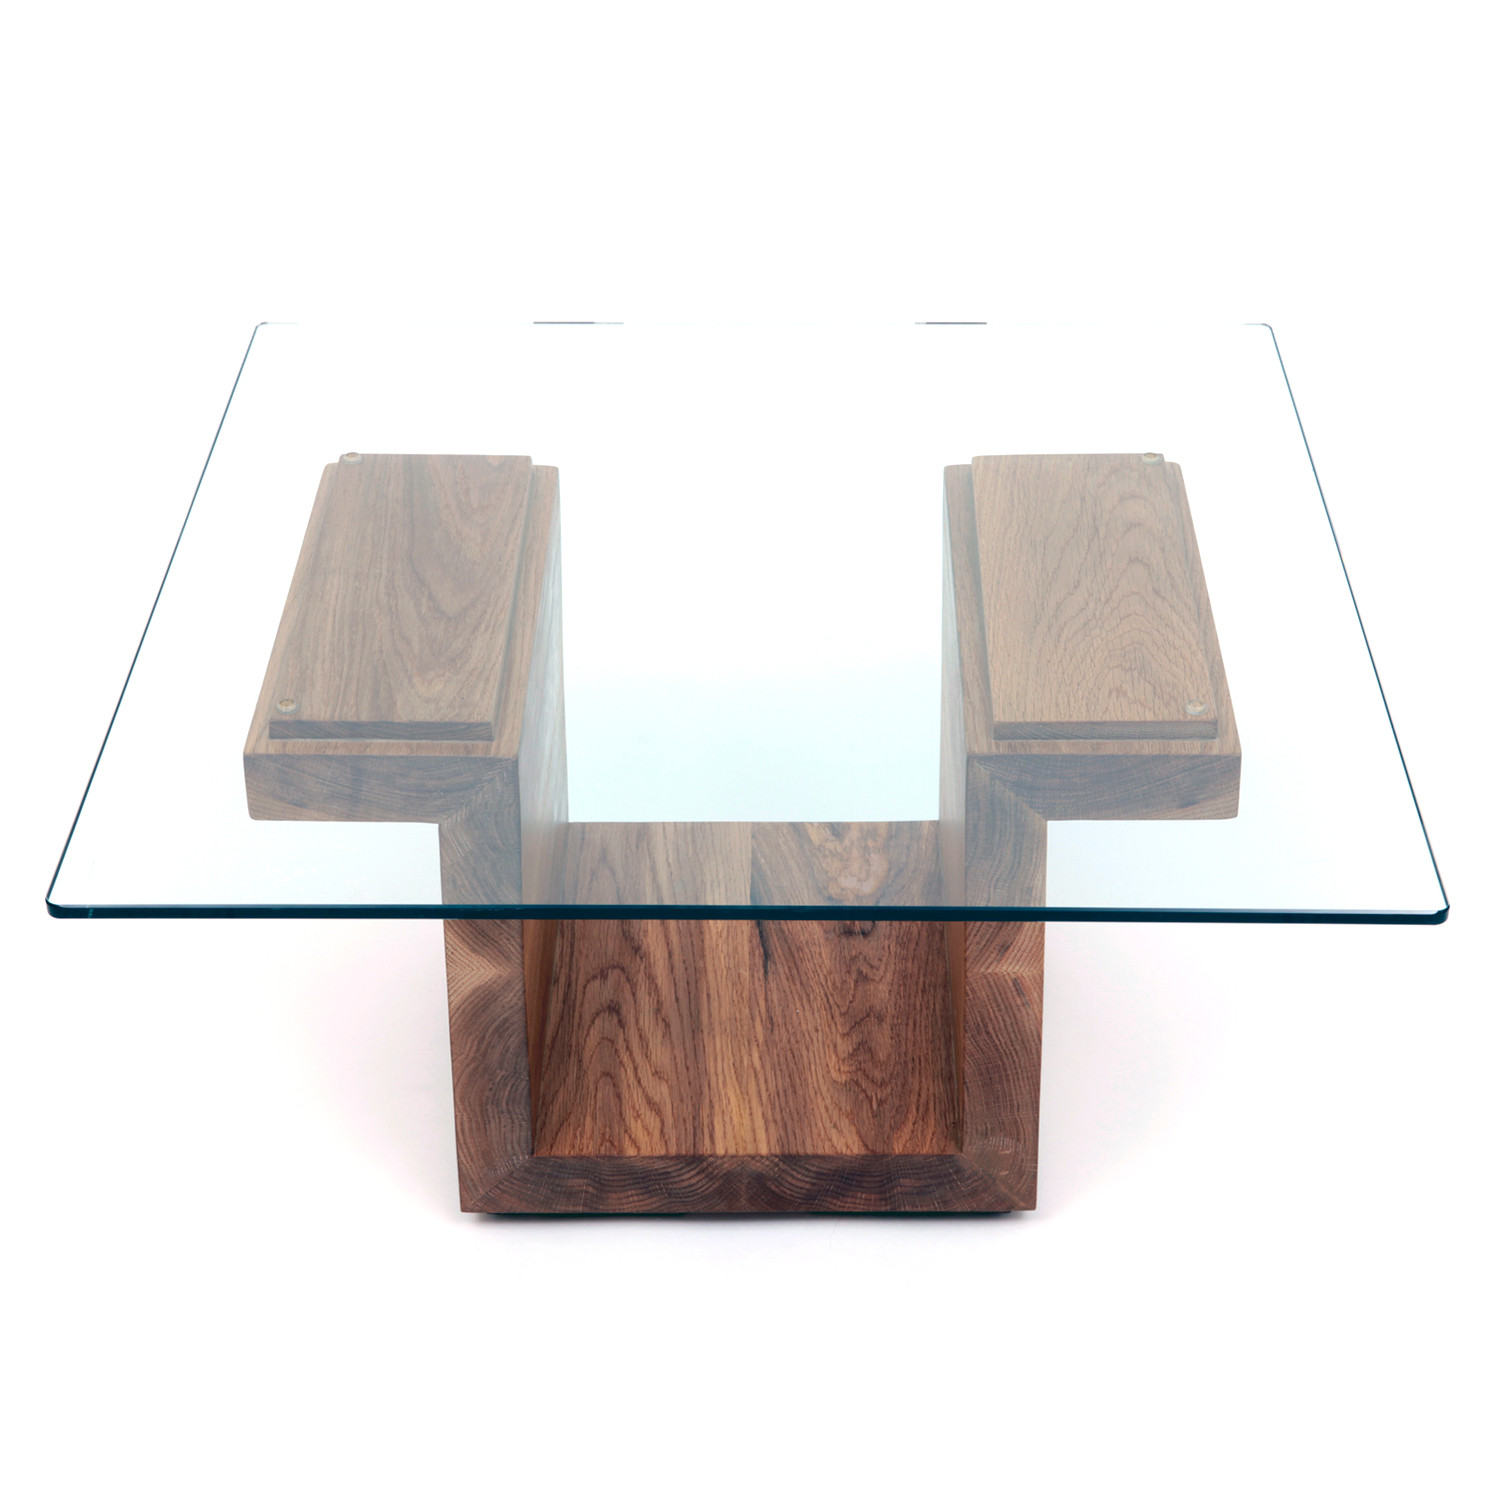 Square Glass Top Table // White Oak ARTLESS Touch Of Modern. Full resolution‎  portraiture, nominally Width 1500 Height 1500 pixels, portraiture with #1D495D.